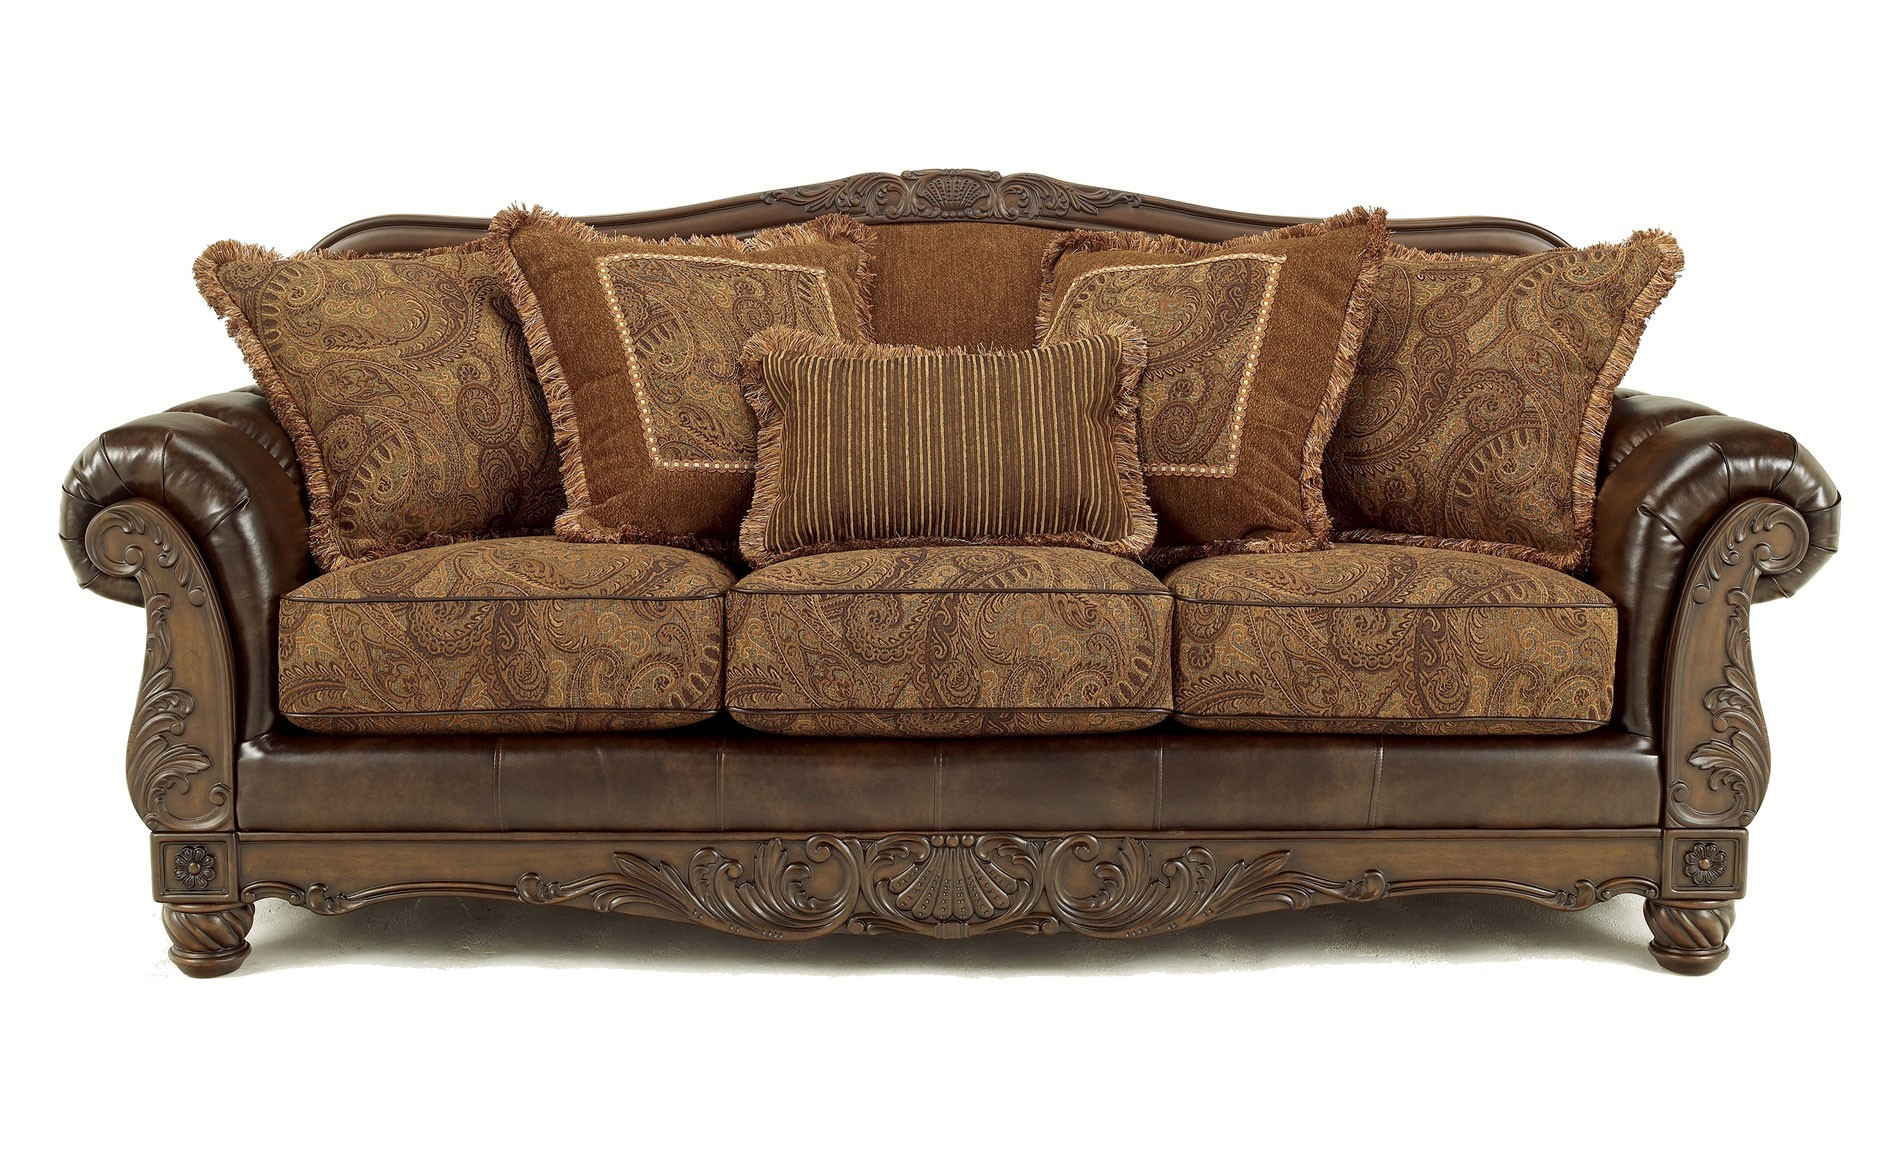 Luxury Antique Sofa Styles Gallery Modern Design Ideas